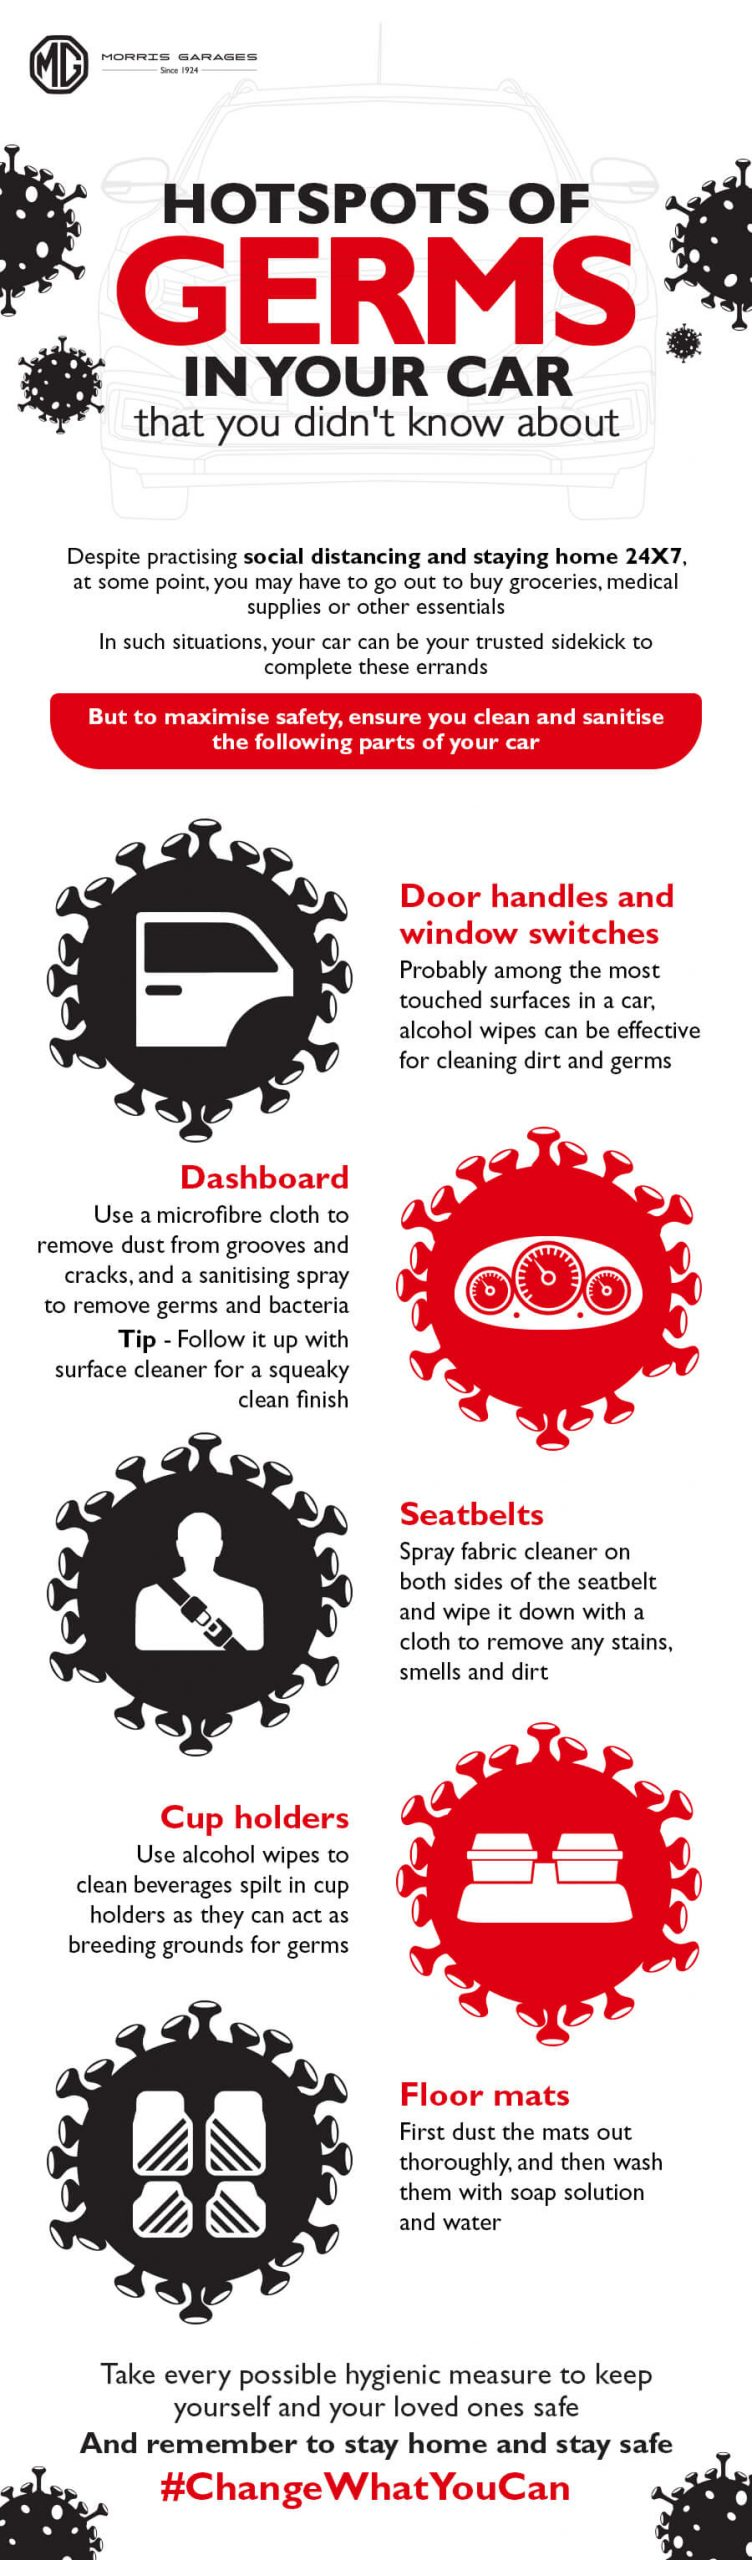 Hotspots of germs in your car